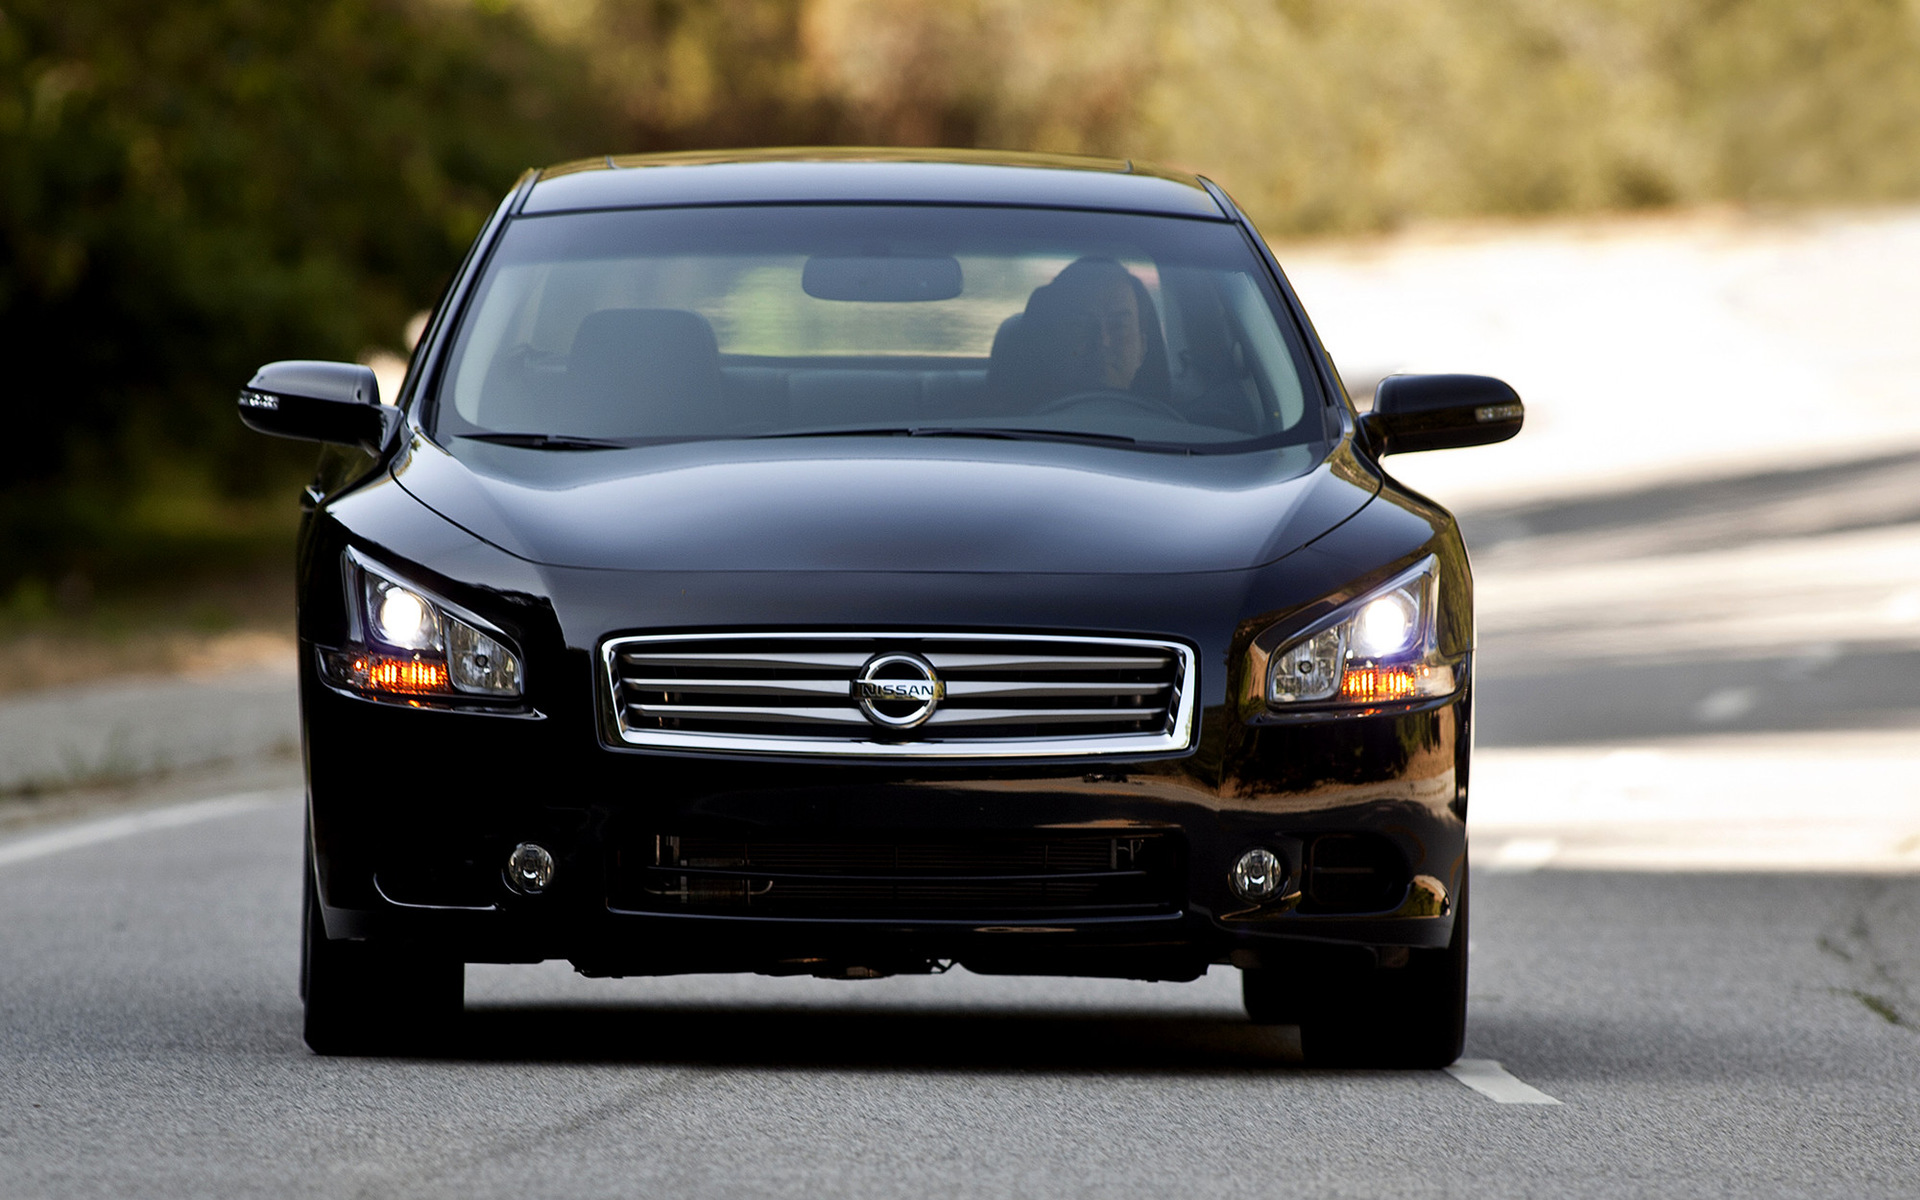 nissan maxima (2008) wallpapers and hd images - car pixel